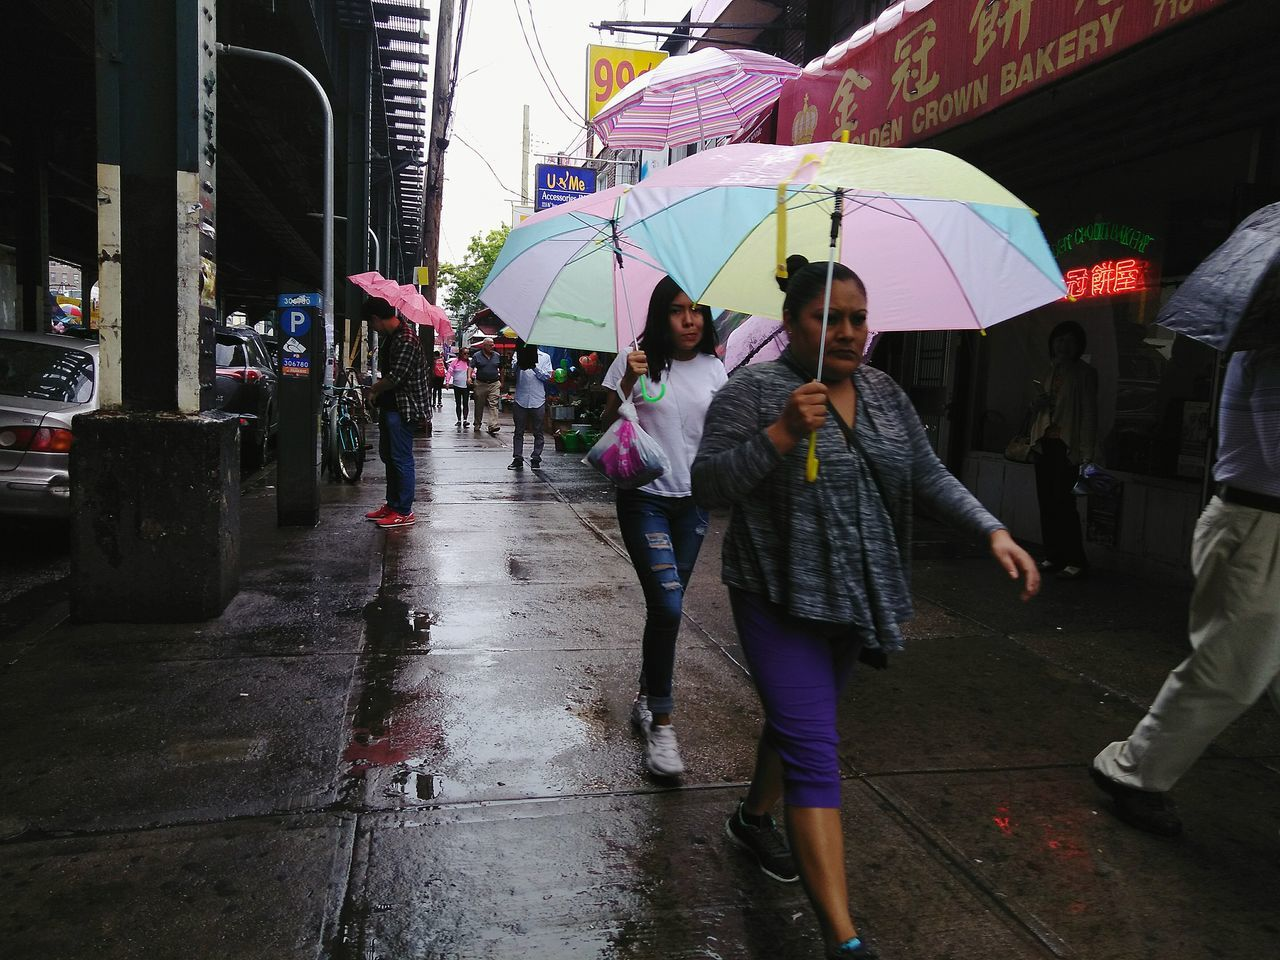 umbrella, rain, rainy season, real people, wet, protection, walking, weather, lifestyles, shelter, outdoors, leisure activity, women, under, day, below, enjoyment, full length, men, togetherness, large group of people, architecture, city, adult, people